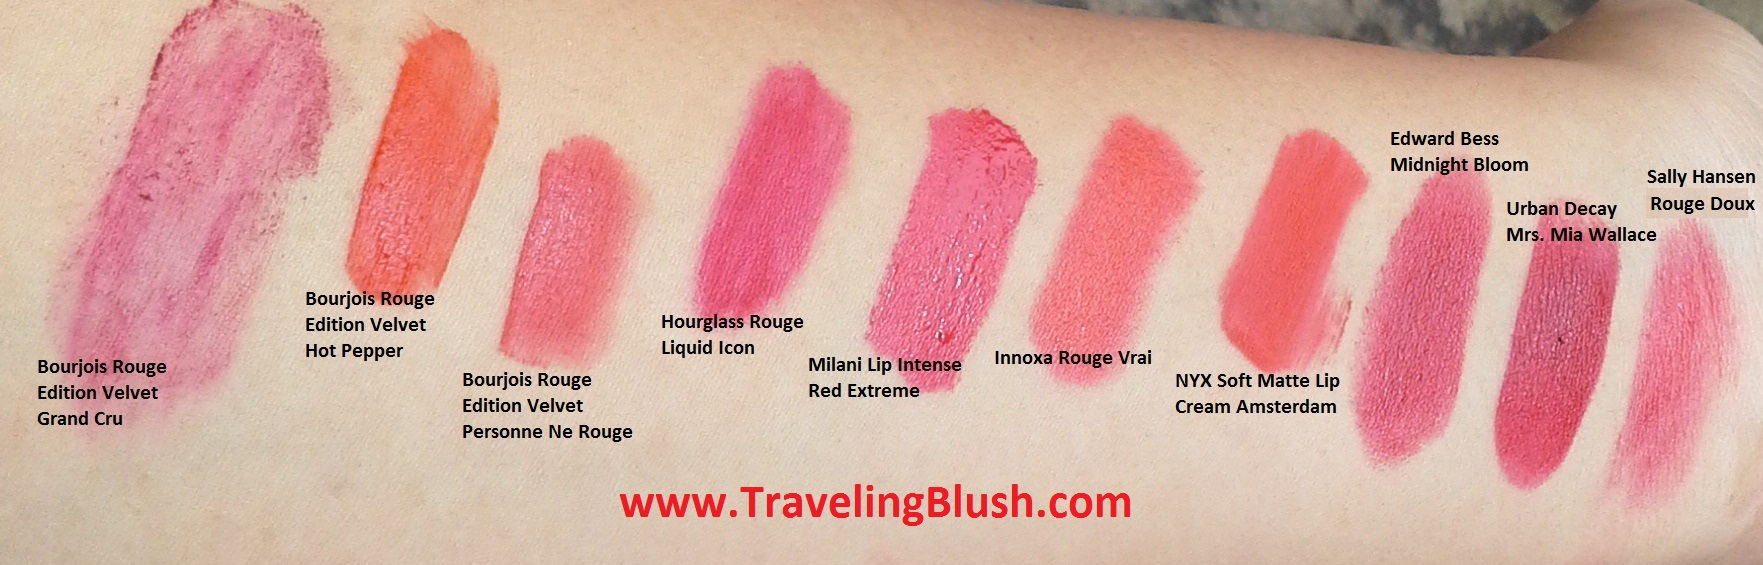 Lip Color Page 3 Nyx Soft Matte Cream All Variant Red Comparisons Natural Light Click To Enlarge